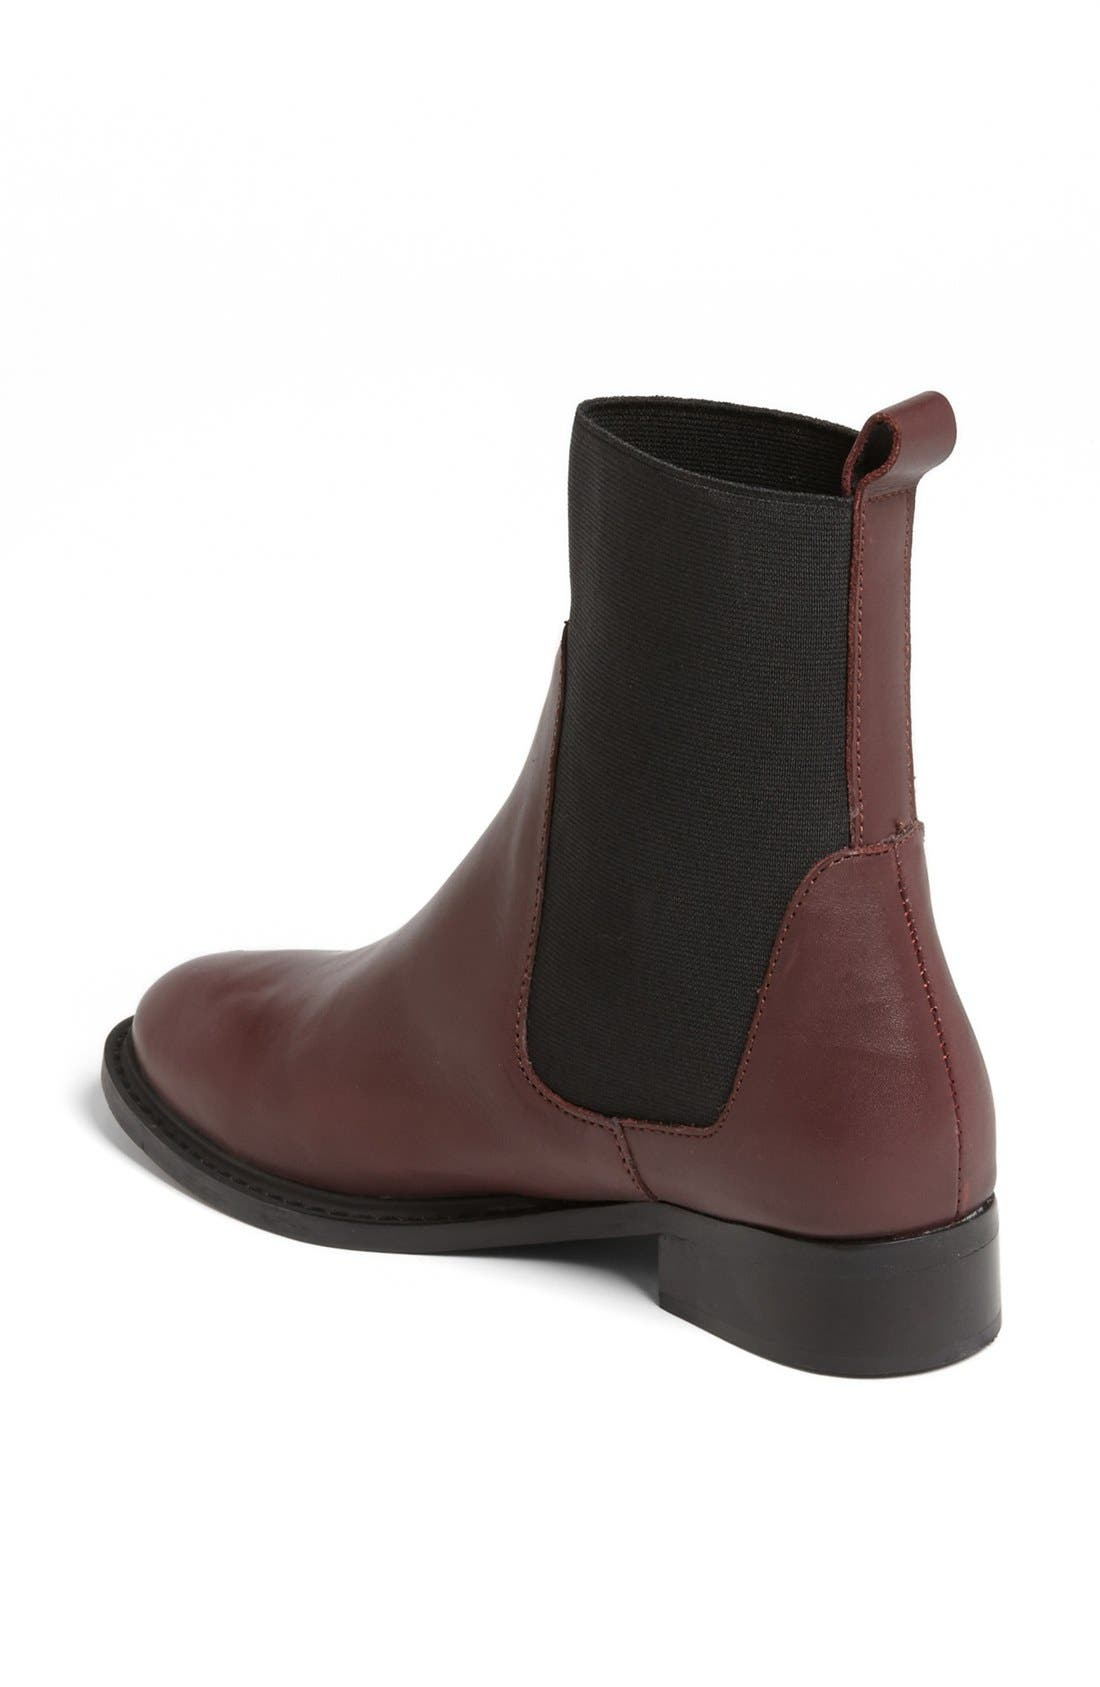 Alternate Image 2  - Topshop 'Alite' Chelsea Boot